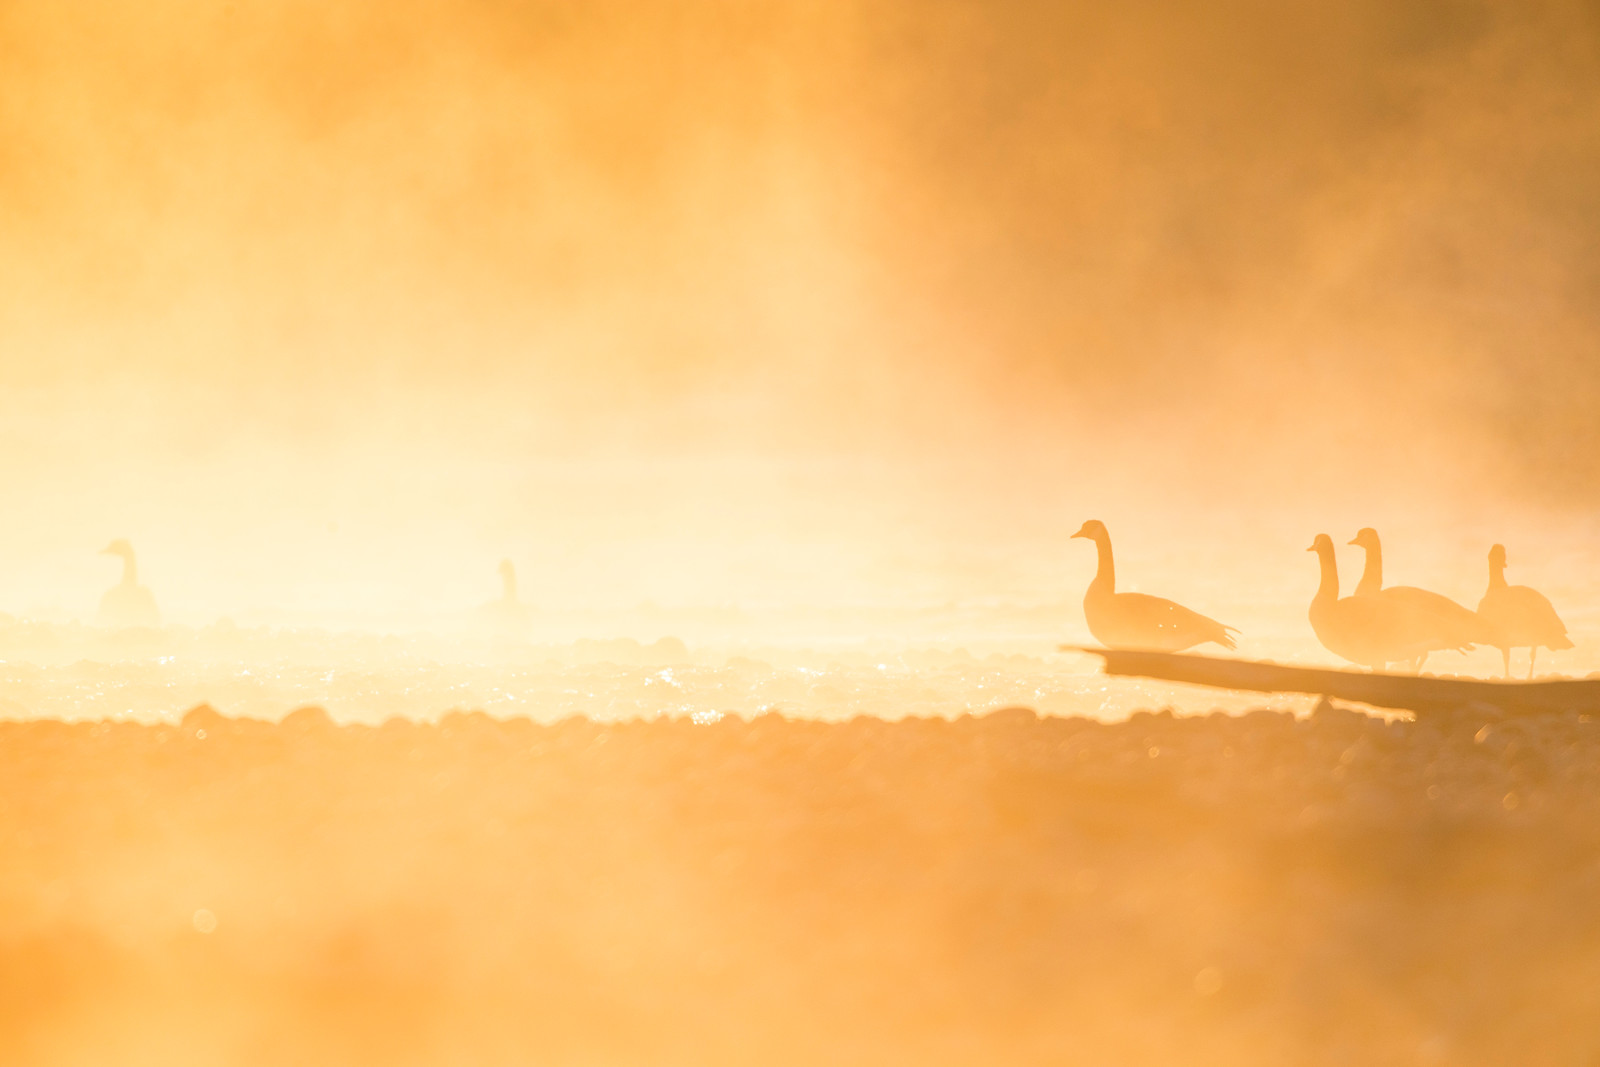 Canadian Geese Wander Through Mist at Sunrise on the Snake River, Jackson Hole Wyoming